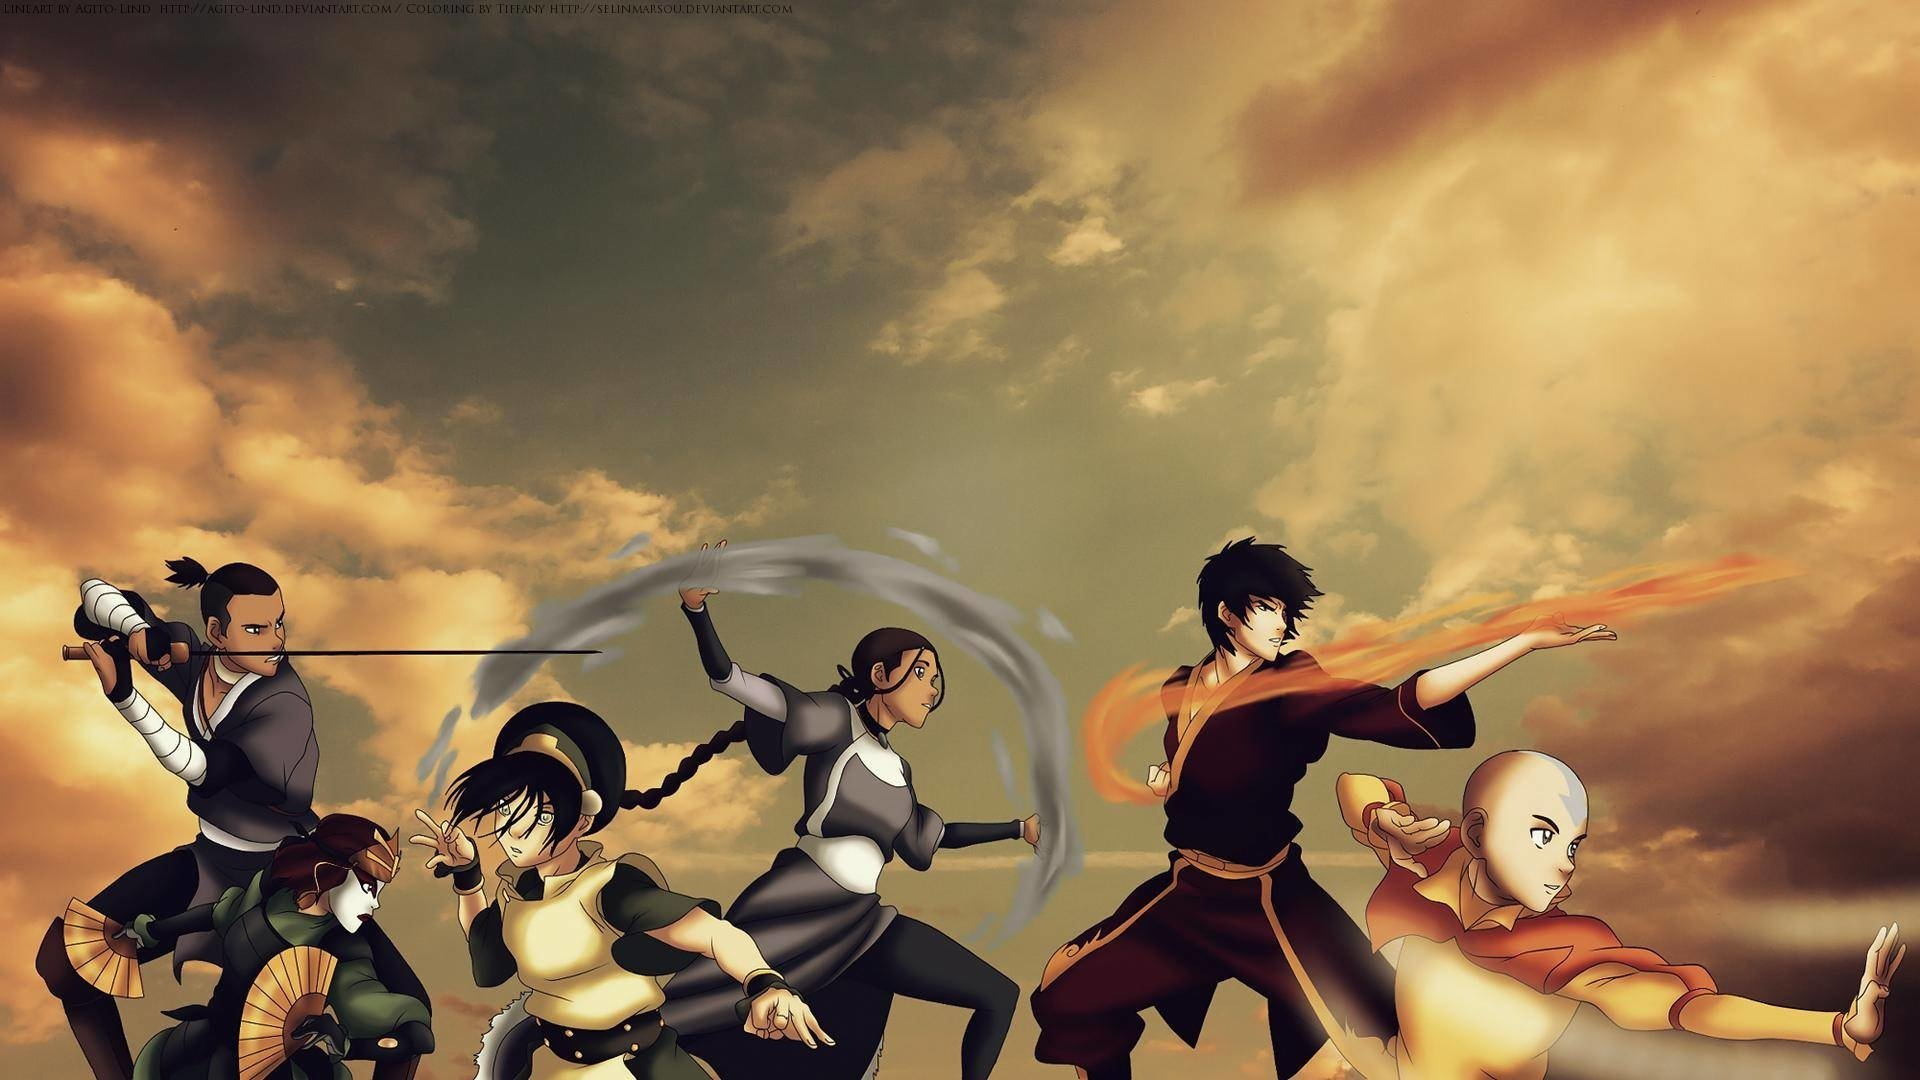 Avatar the last airbender wallpaper hd